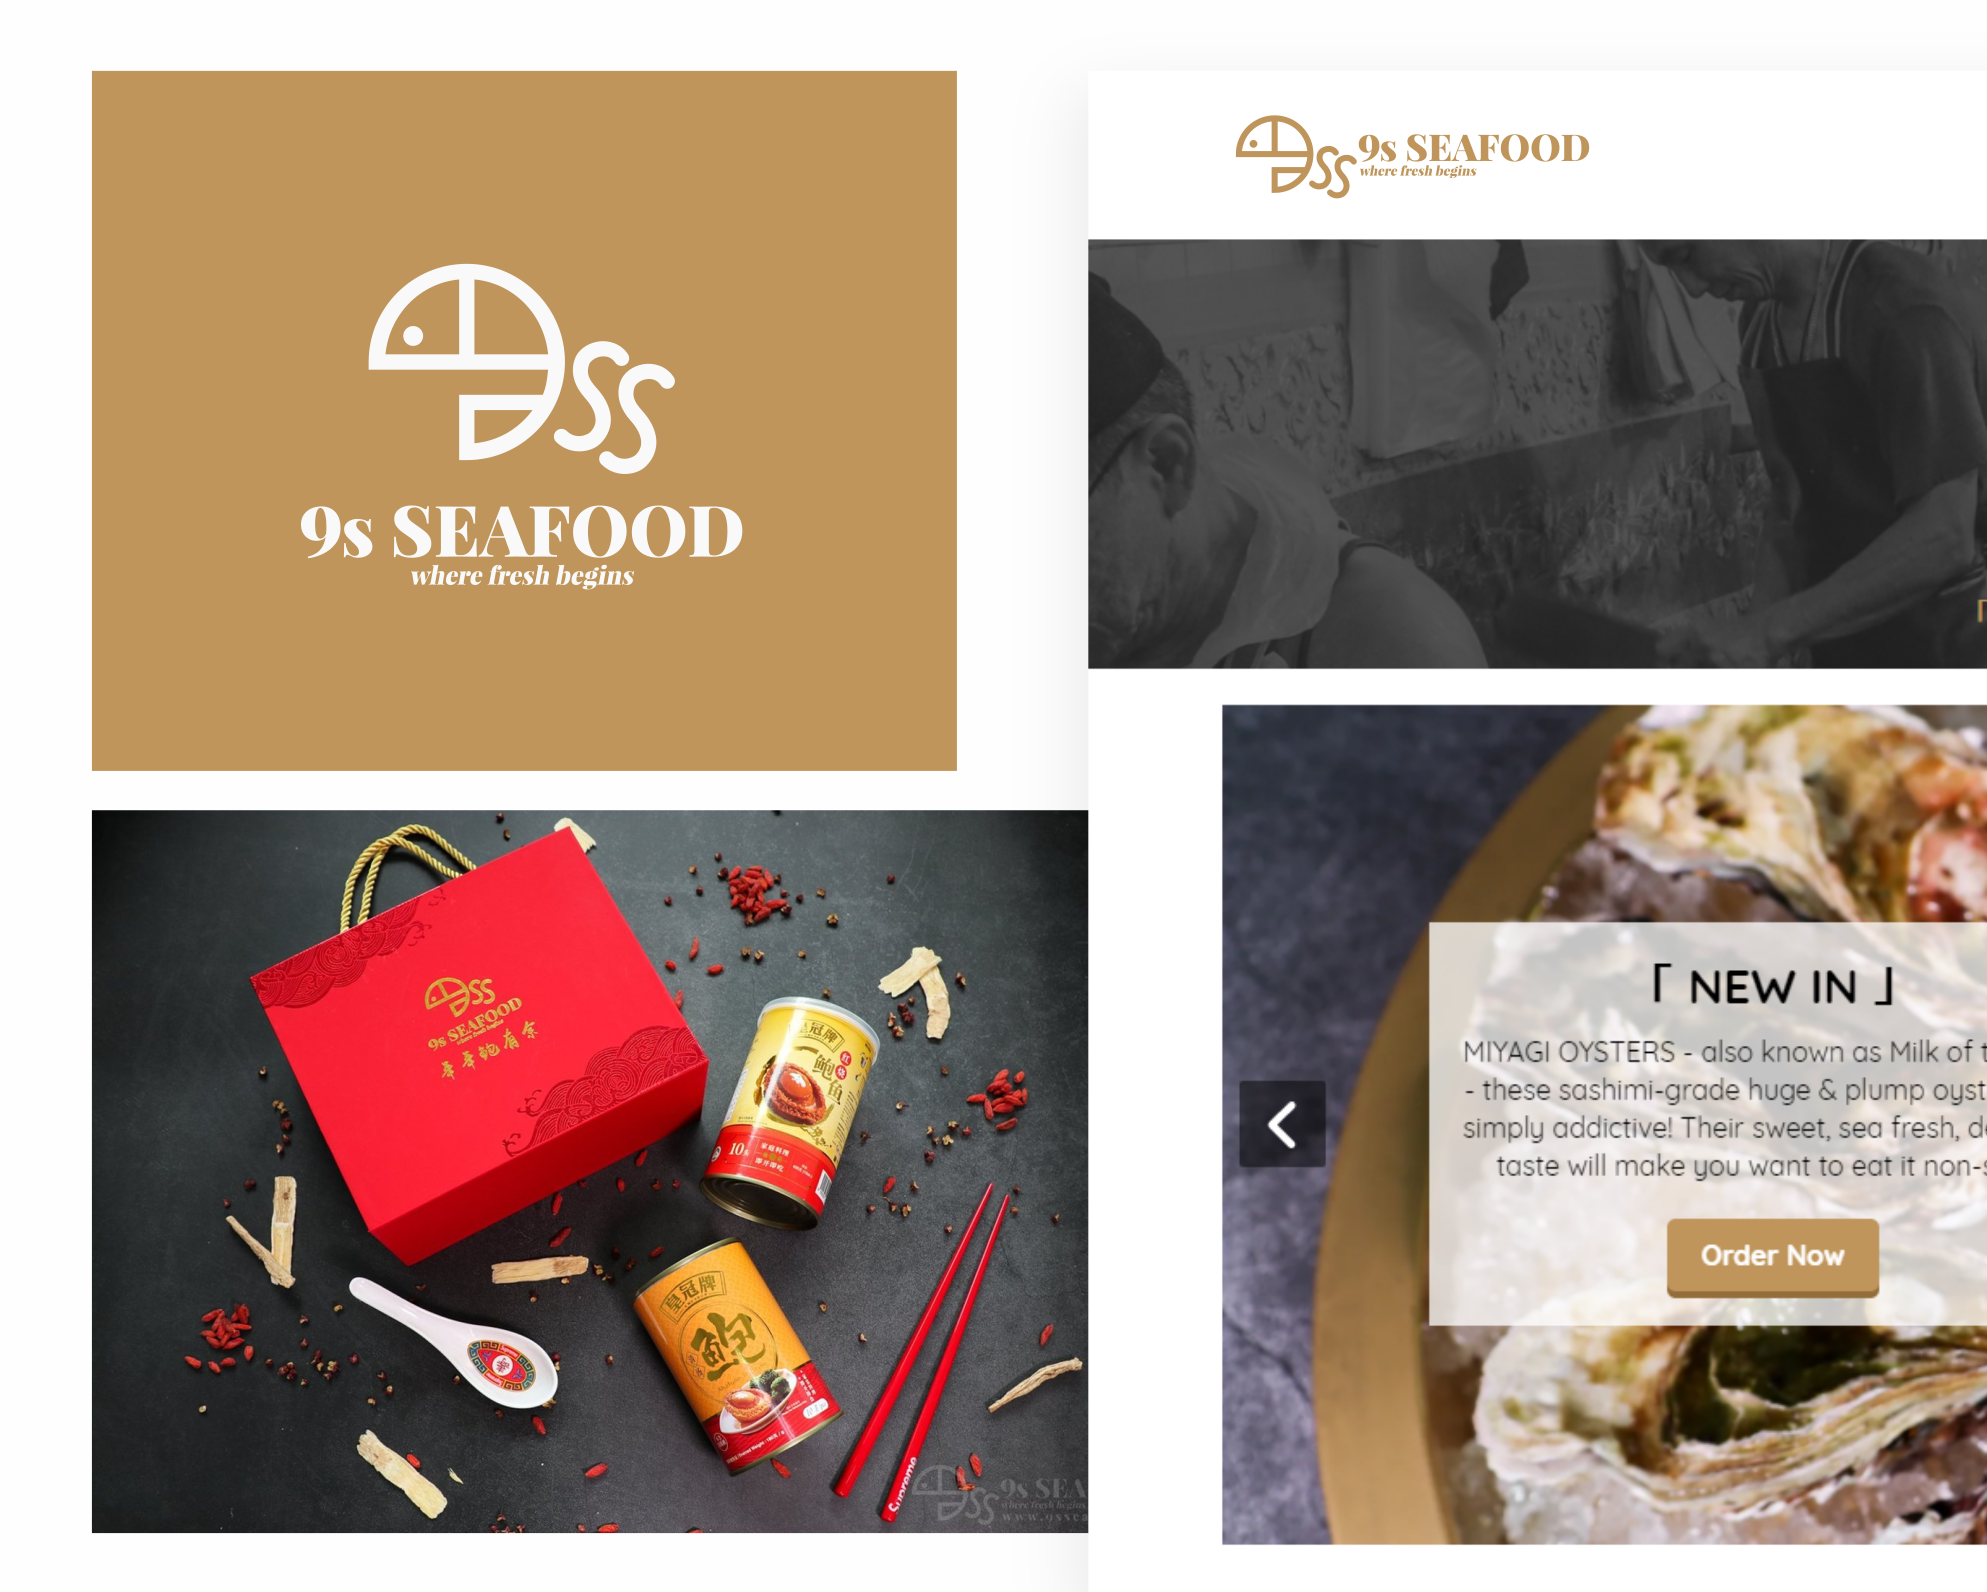 Logo design for 9s Seafood. Designed by Johnery